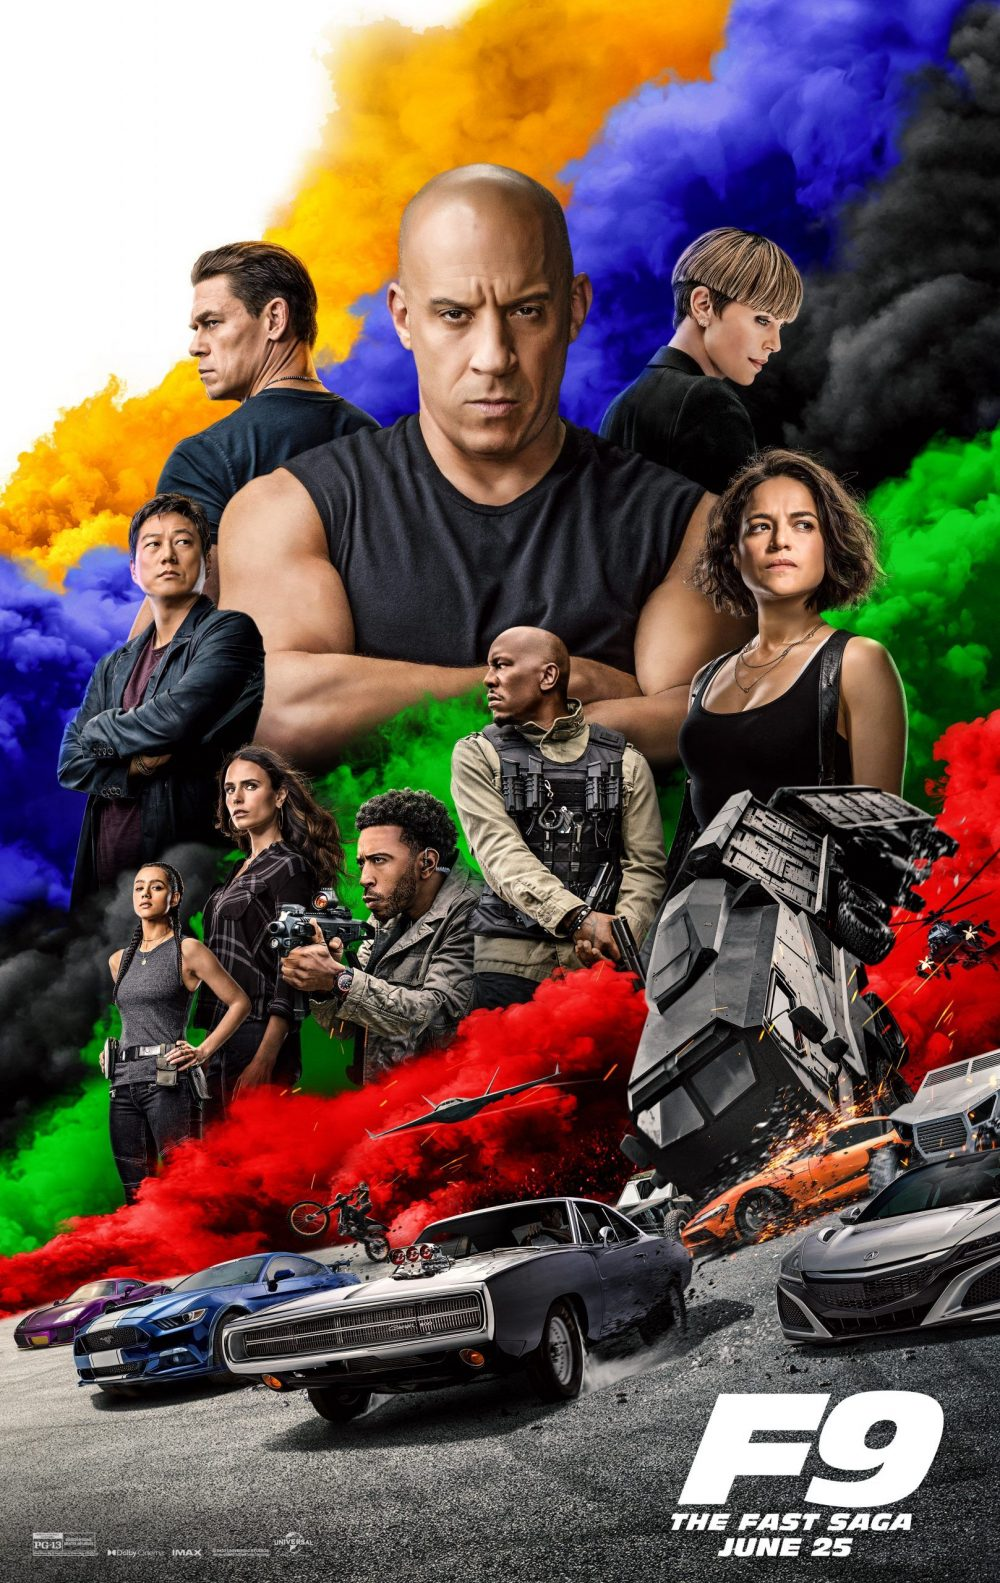 Ver y descargar Fast & Furious 9 | Torrent y cines